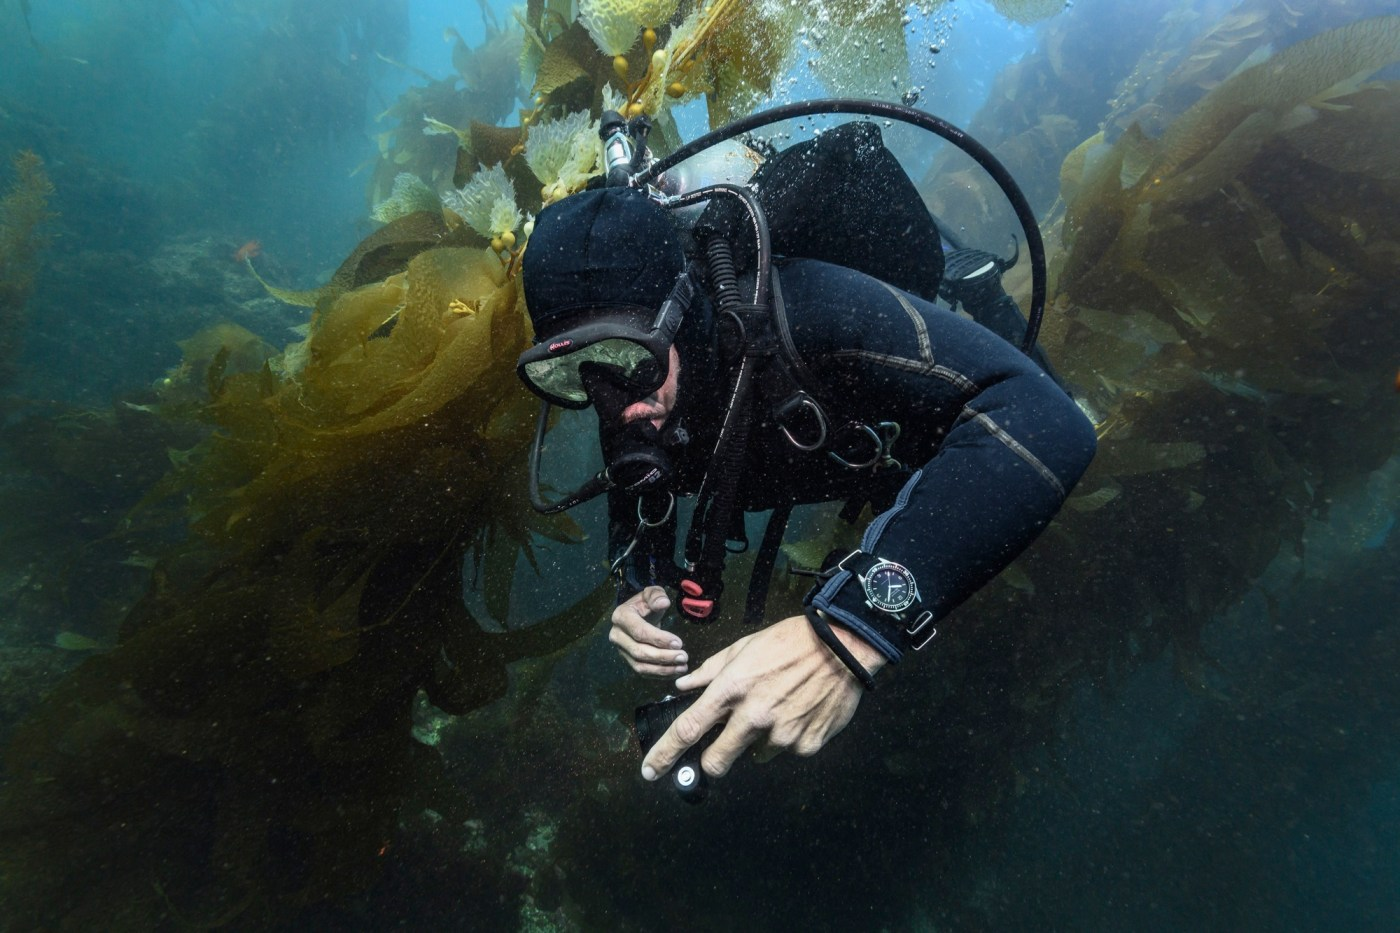 Blancpain Fifty Fathoms Bathyscaphe Limited Edition Hodinkee underwater scuba diving shot